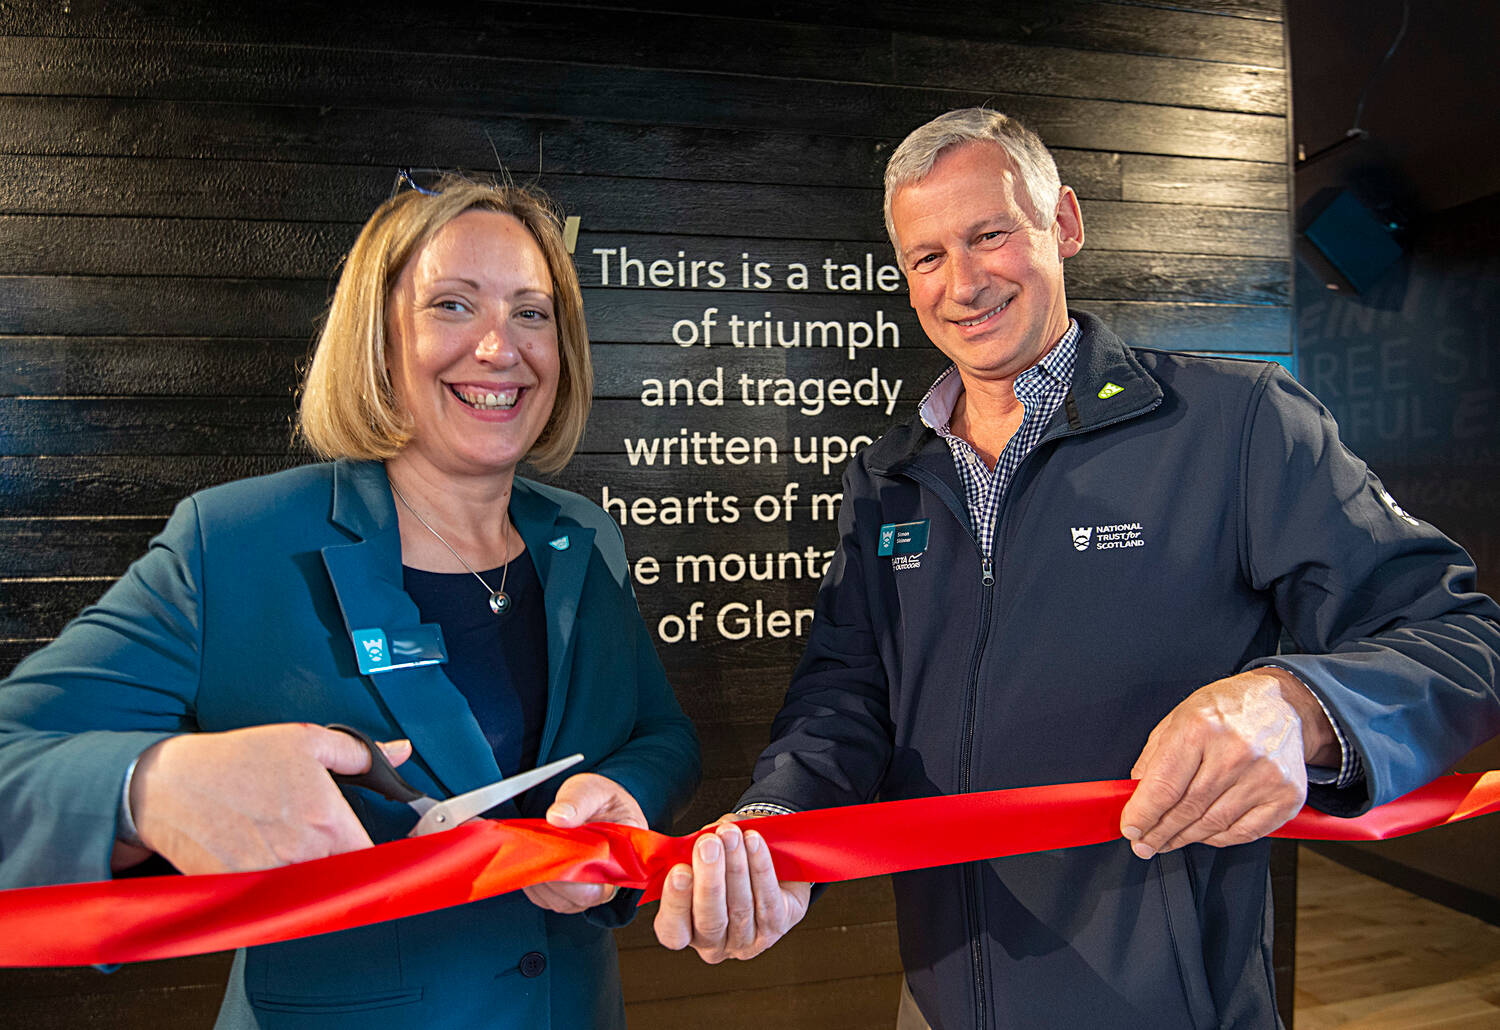 Clea Warner, General Manager, North West & Islands with Simon Skinner, Chief Executive for the Trust officially open the new Glencoe Visitor Centre.